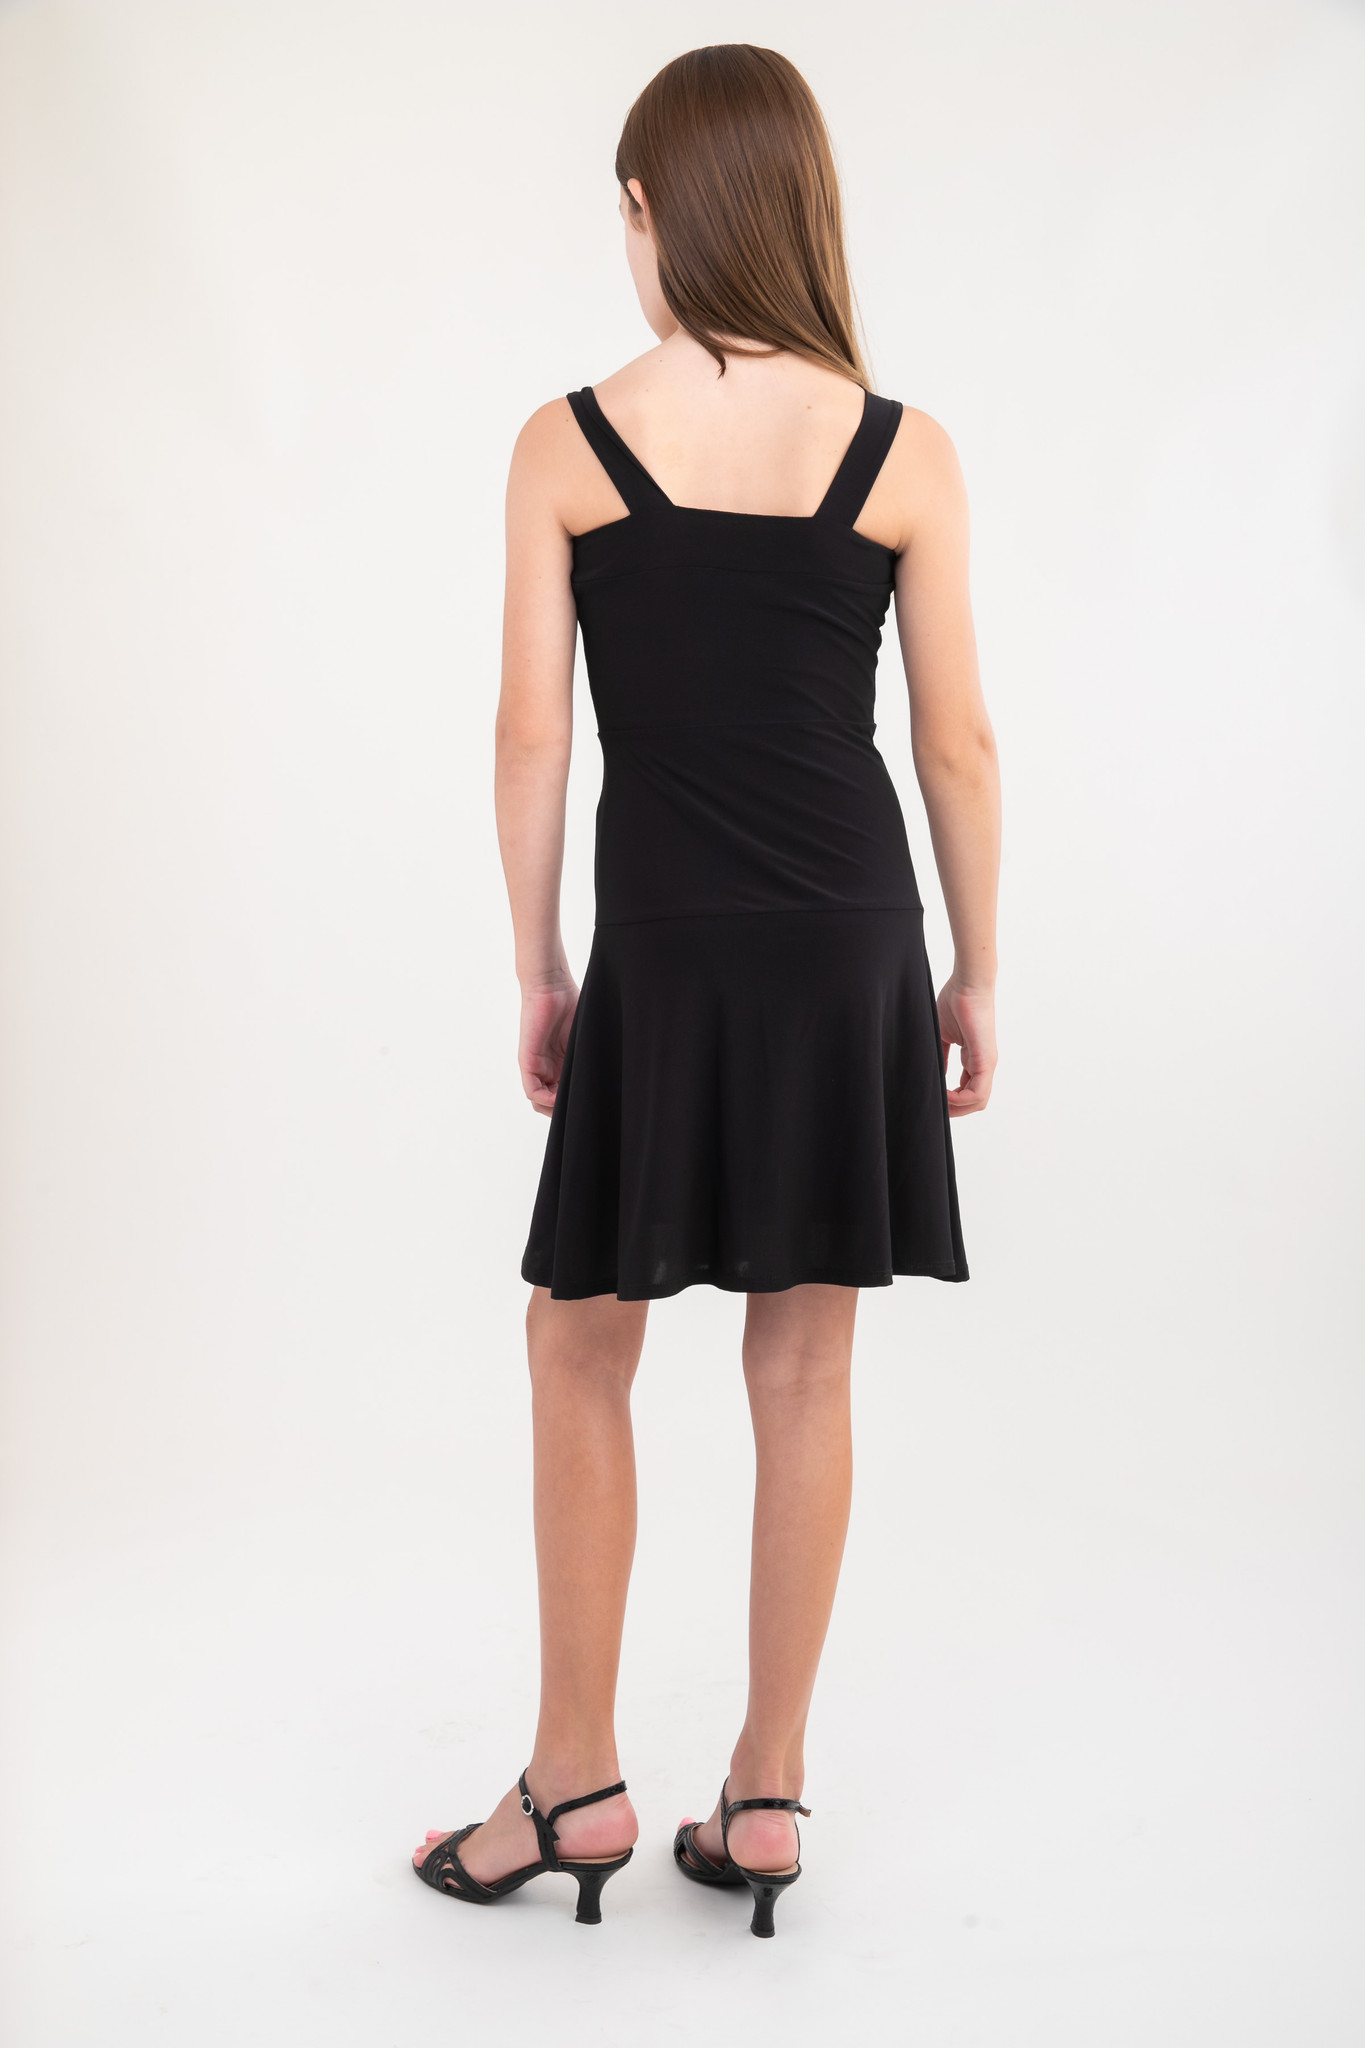 Black Skater Dress in Longer Length back.